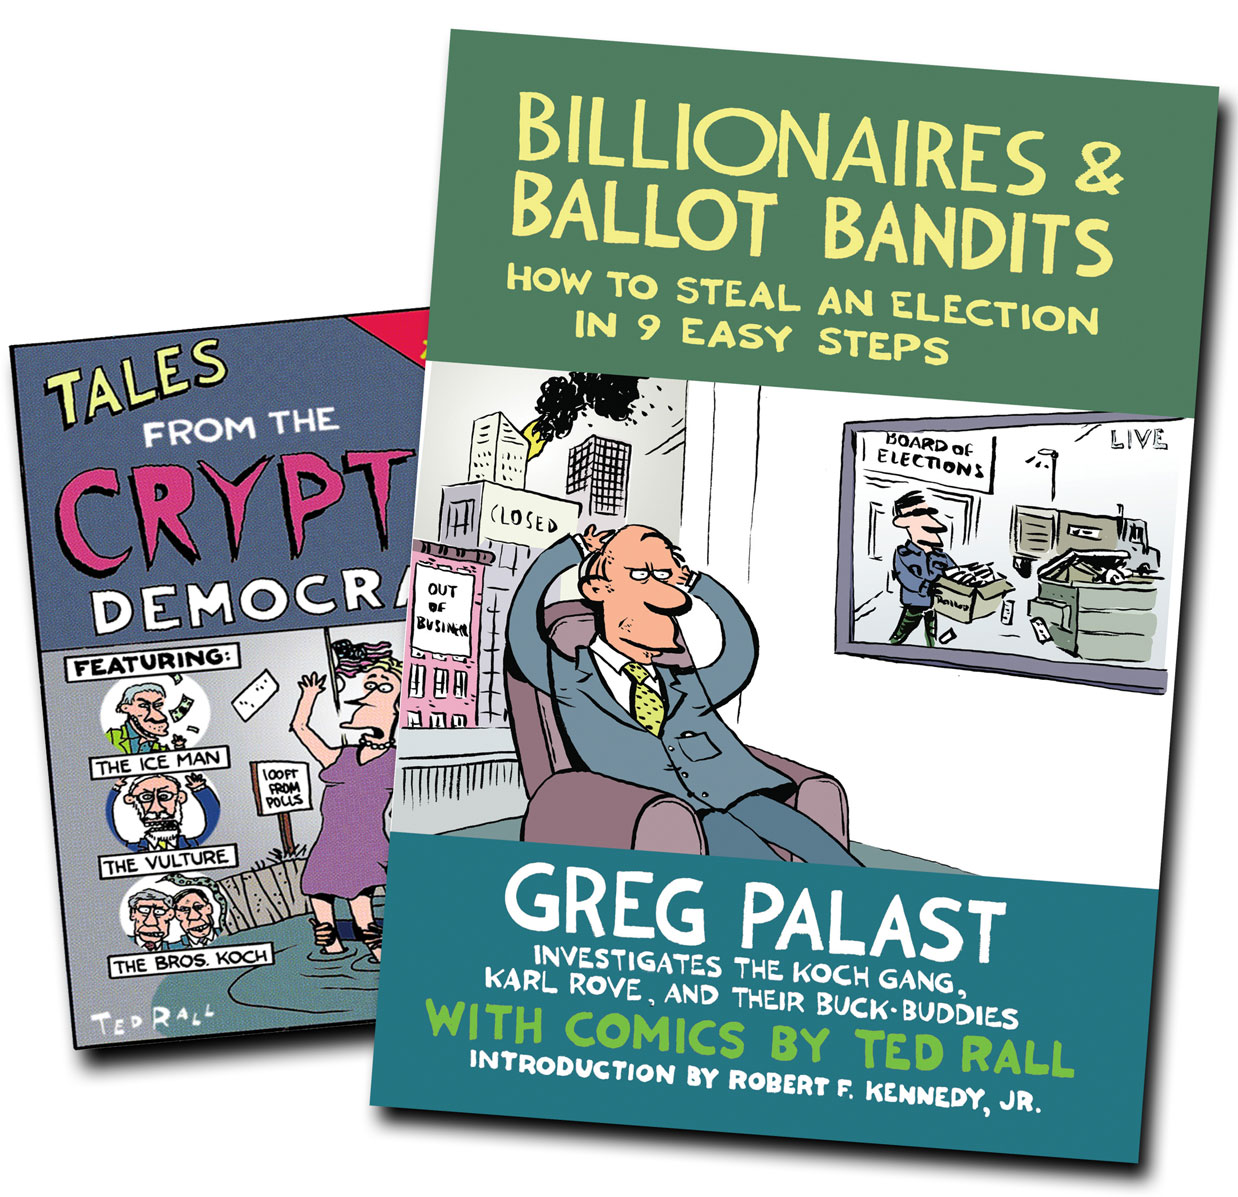 Greg Palast Introduces His New Book, 'Billionaires & Ballot Bandits'